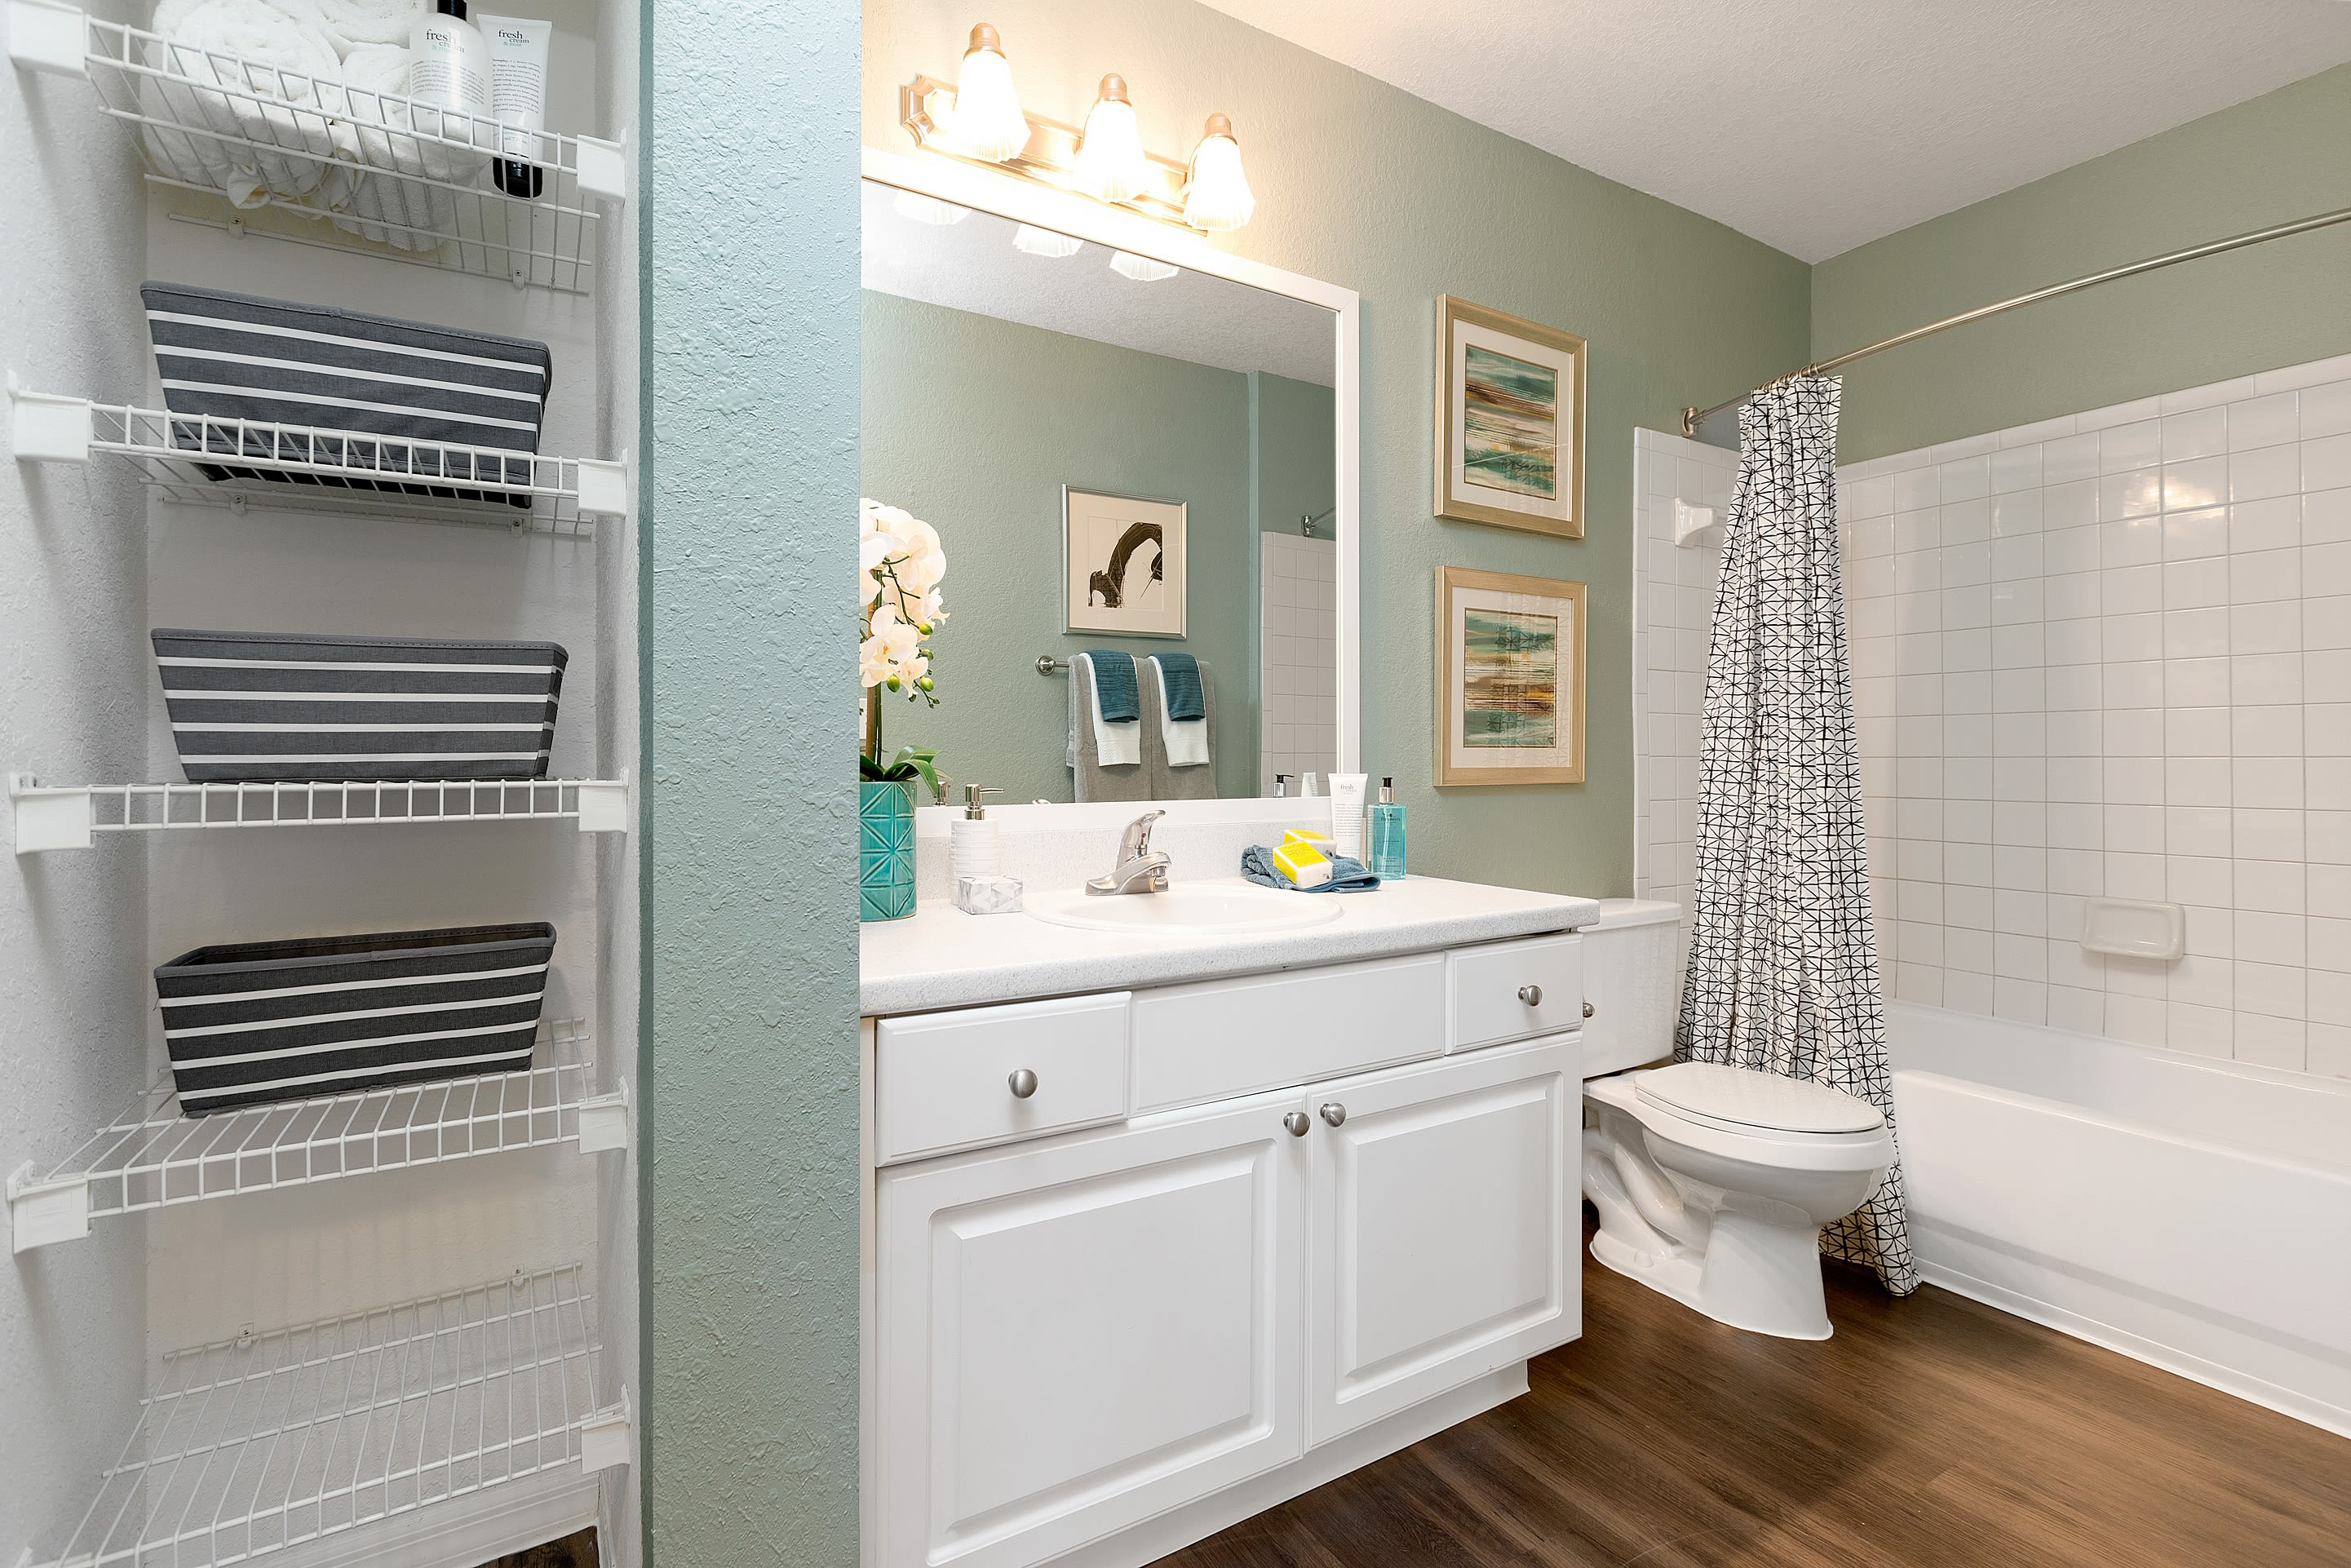 renovated bathrooms at The Avenue in Ocoee